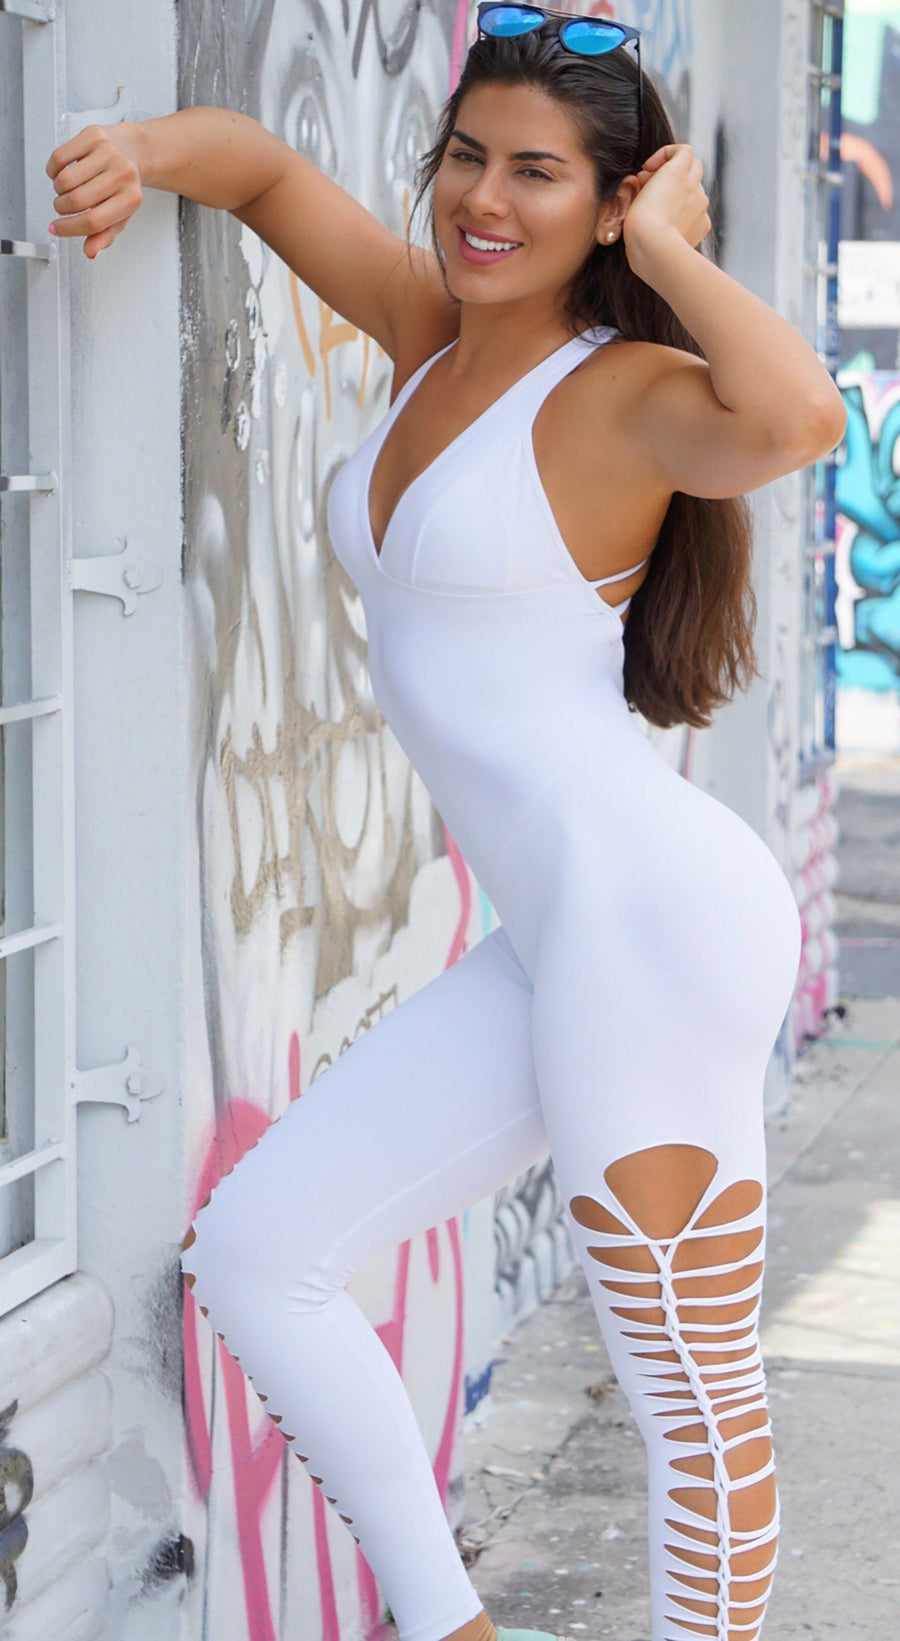 Brazilian Workout Jumpsuit - Braided  One piece White